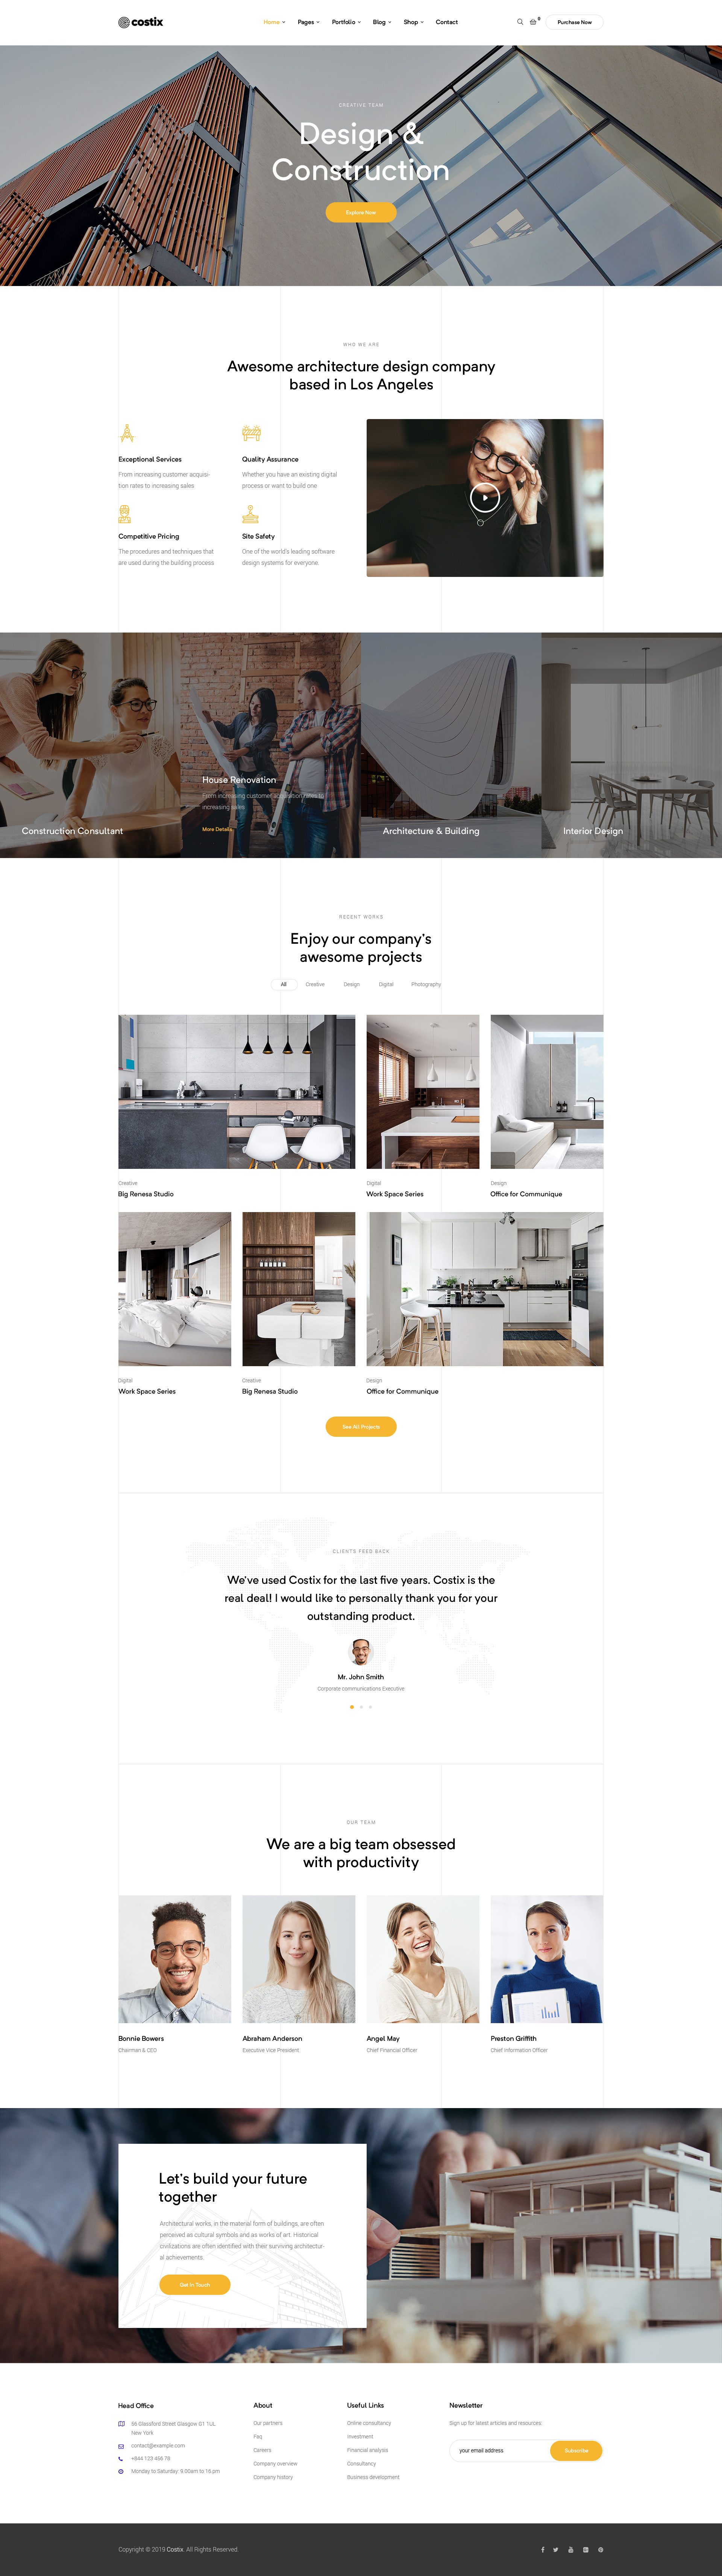 fashion angels interior design sketch portfolio template